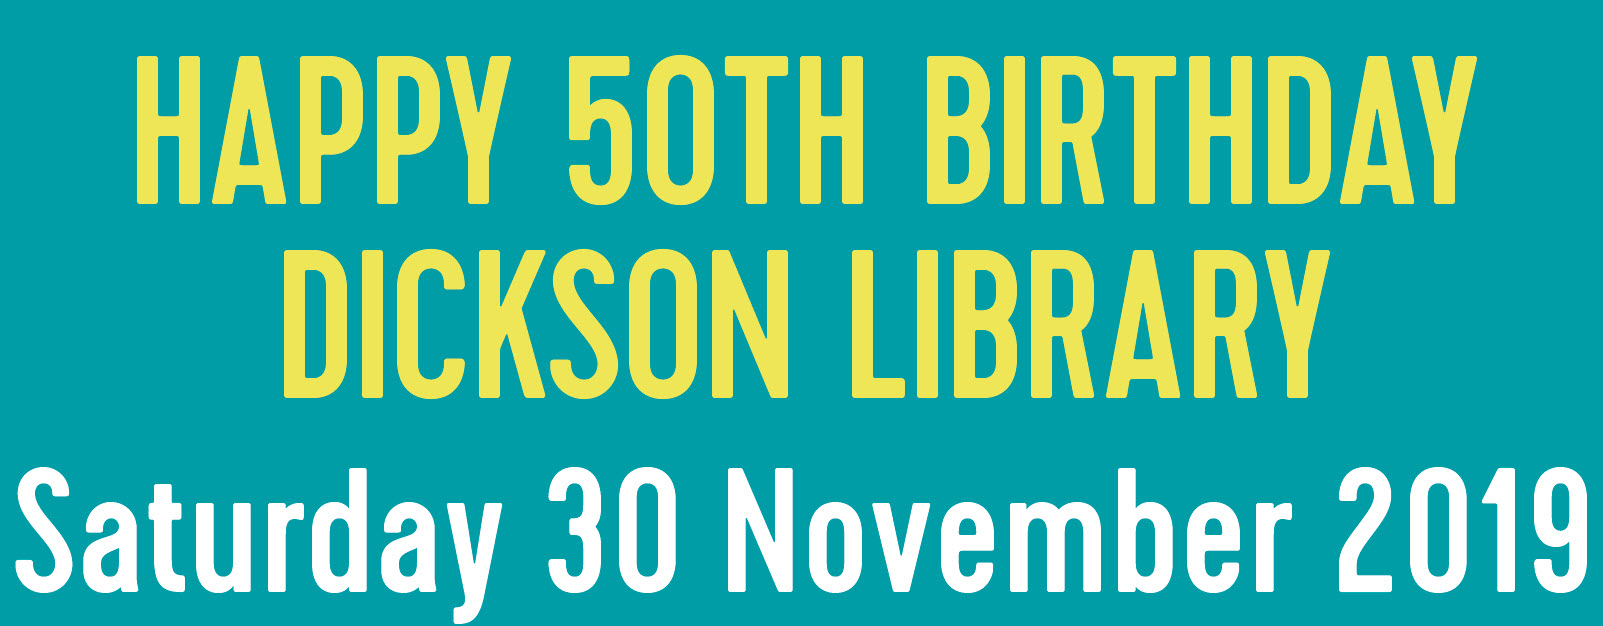 50th Birthday - Dickson Library Events